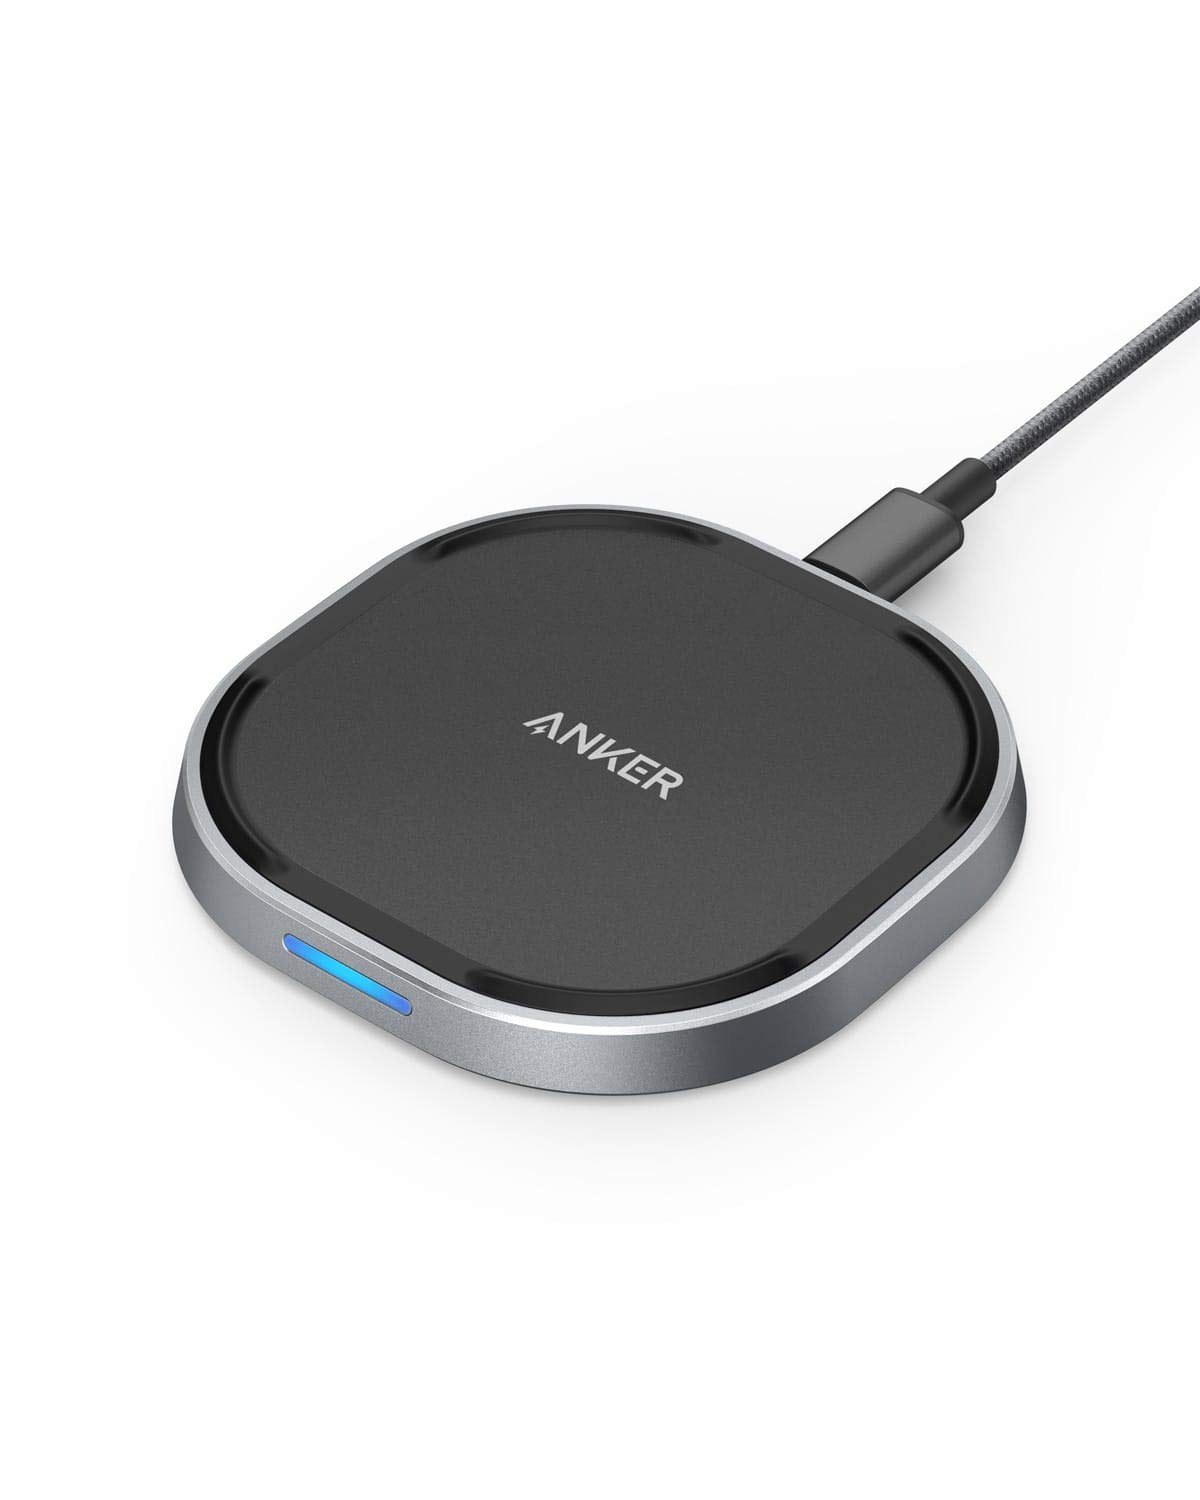 Anker Wireless Charger with USB-C, 15W Metal Fast Wireless Charging Pad, Qi-Certified, 7.5W Fast Charge iPhone XS/XS Max/XR/X/8/8 Plus, 10W for Galaxy S9/S9+/S8/Note 9, PowerWave 15 Pad(No AC Adapter) by Anker